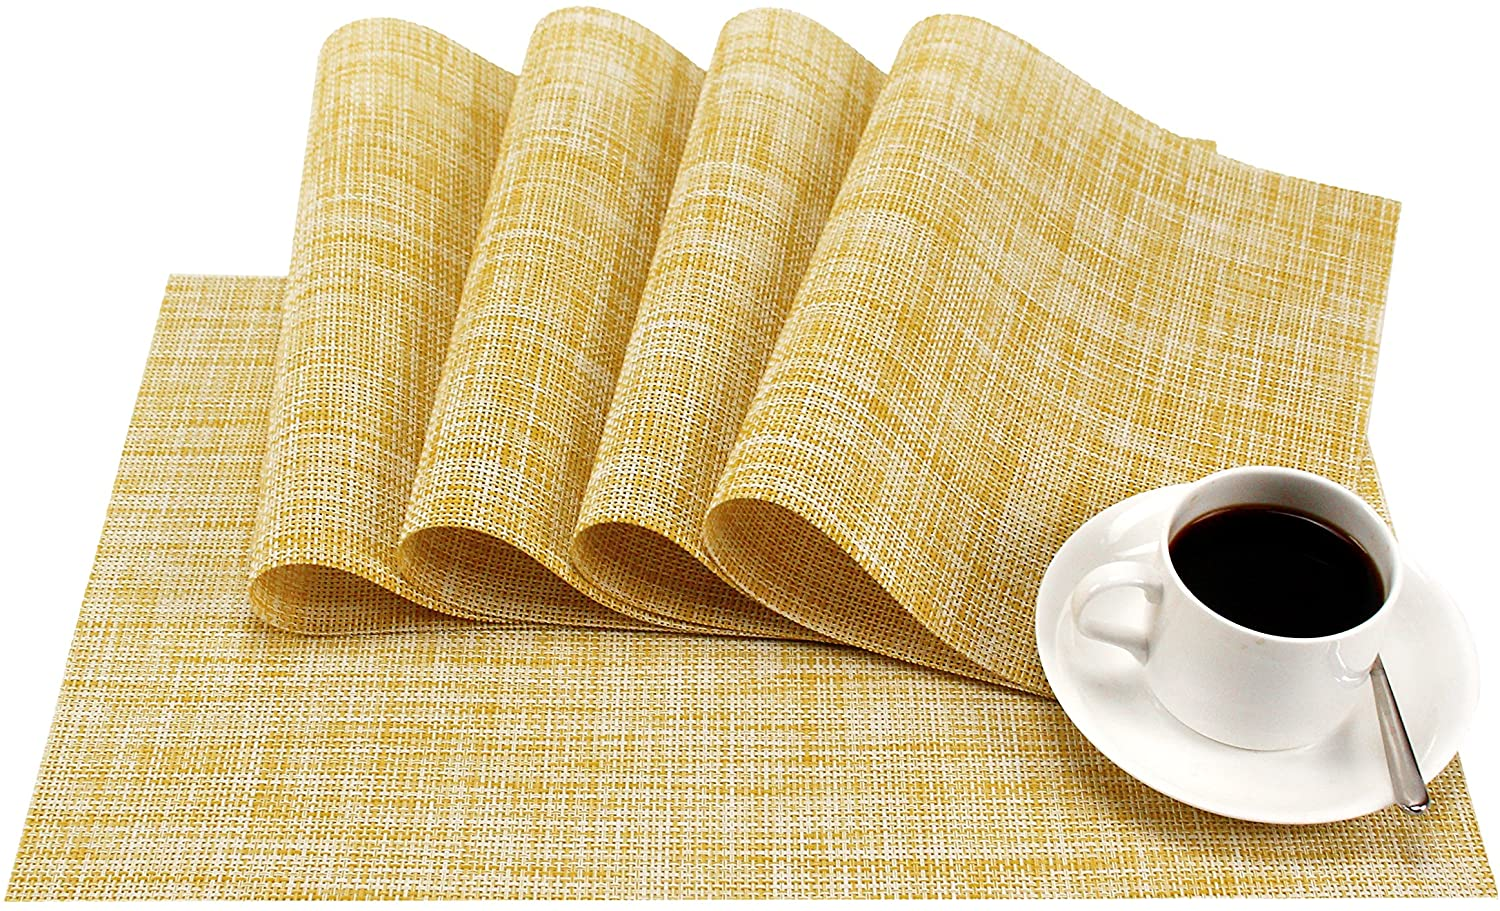 GEFEII PVC Woven Vinyl Non-Slip Heat-Resistant Yellow Placemats Kitchen Environmental Table Place Mats Pad Cushion Yellow Placemats for Kitchen Dining Table Set of 6 (Yellow, 6)